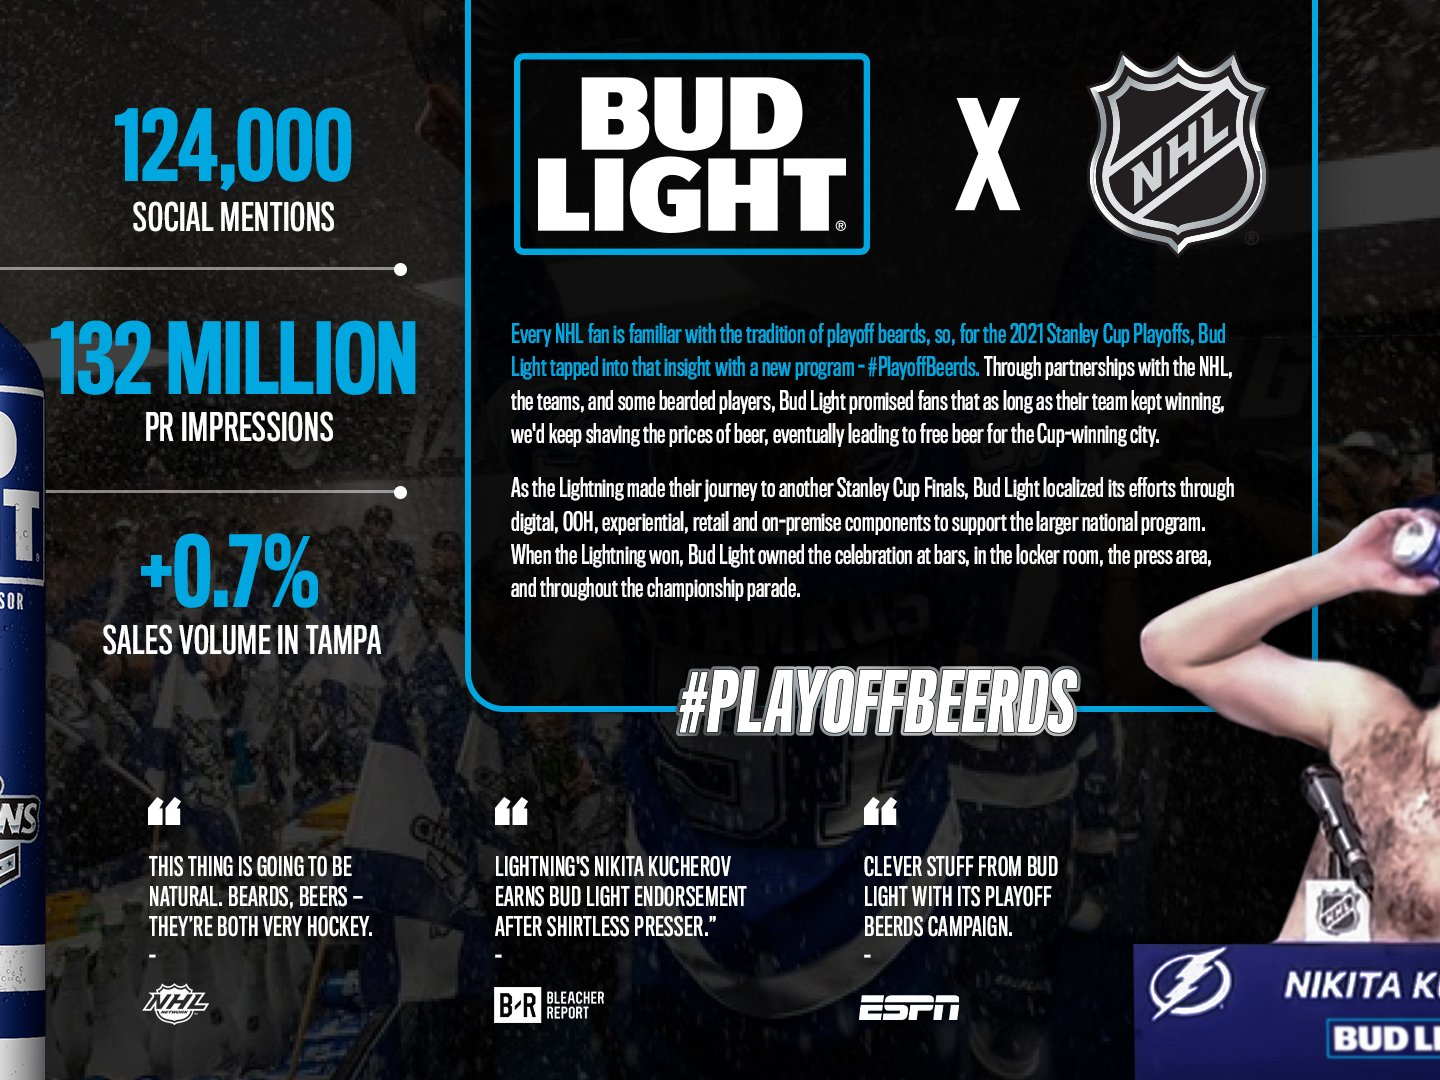 Bud Light Playoff Beerds Thumbnail